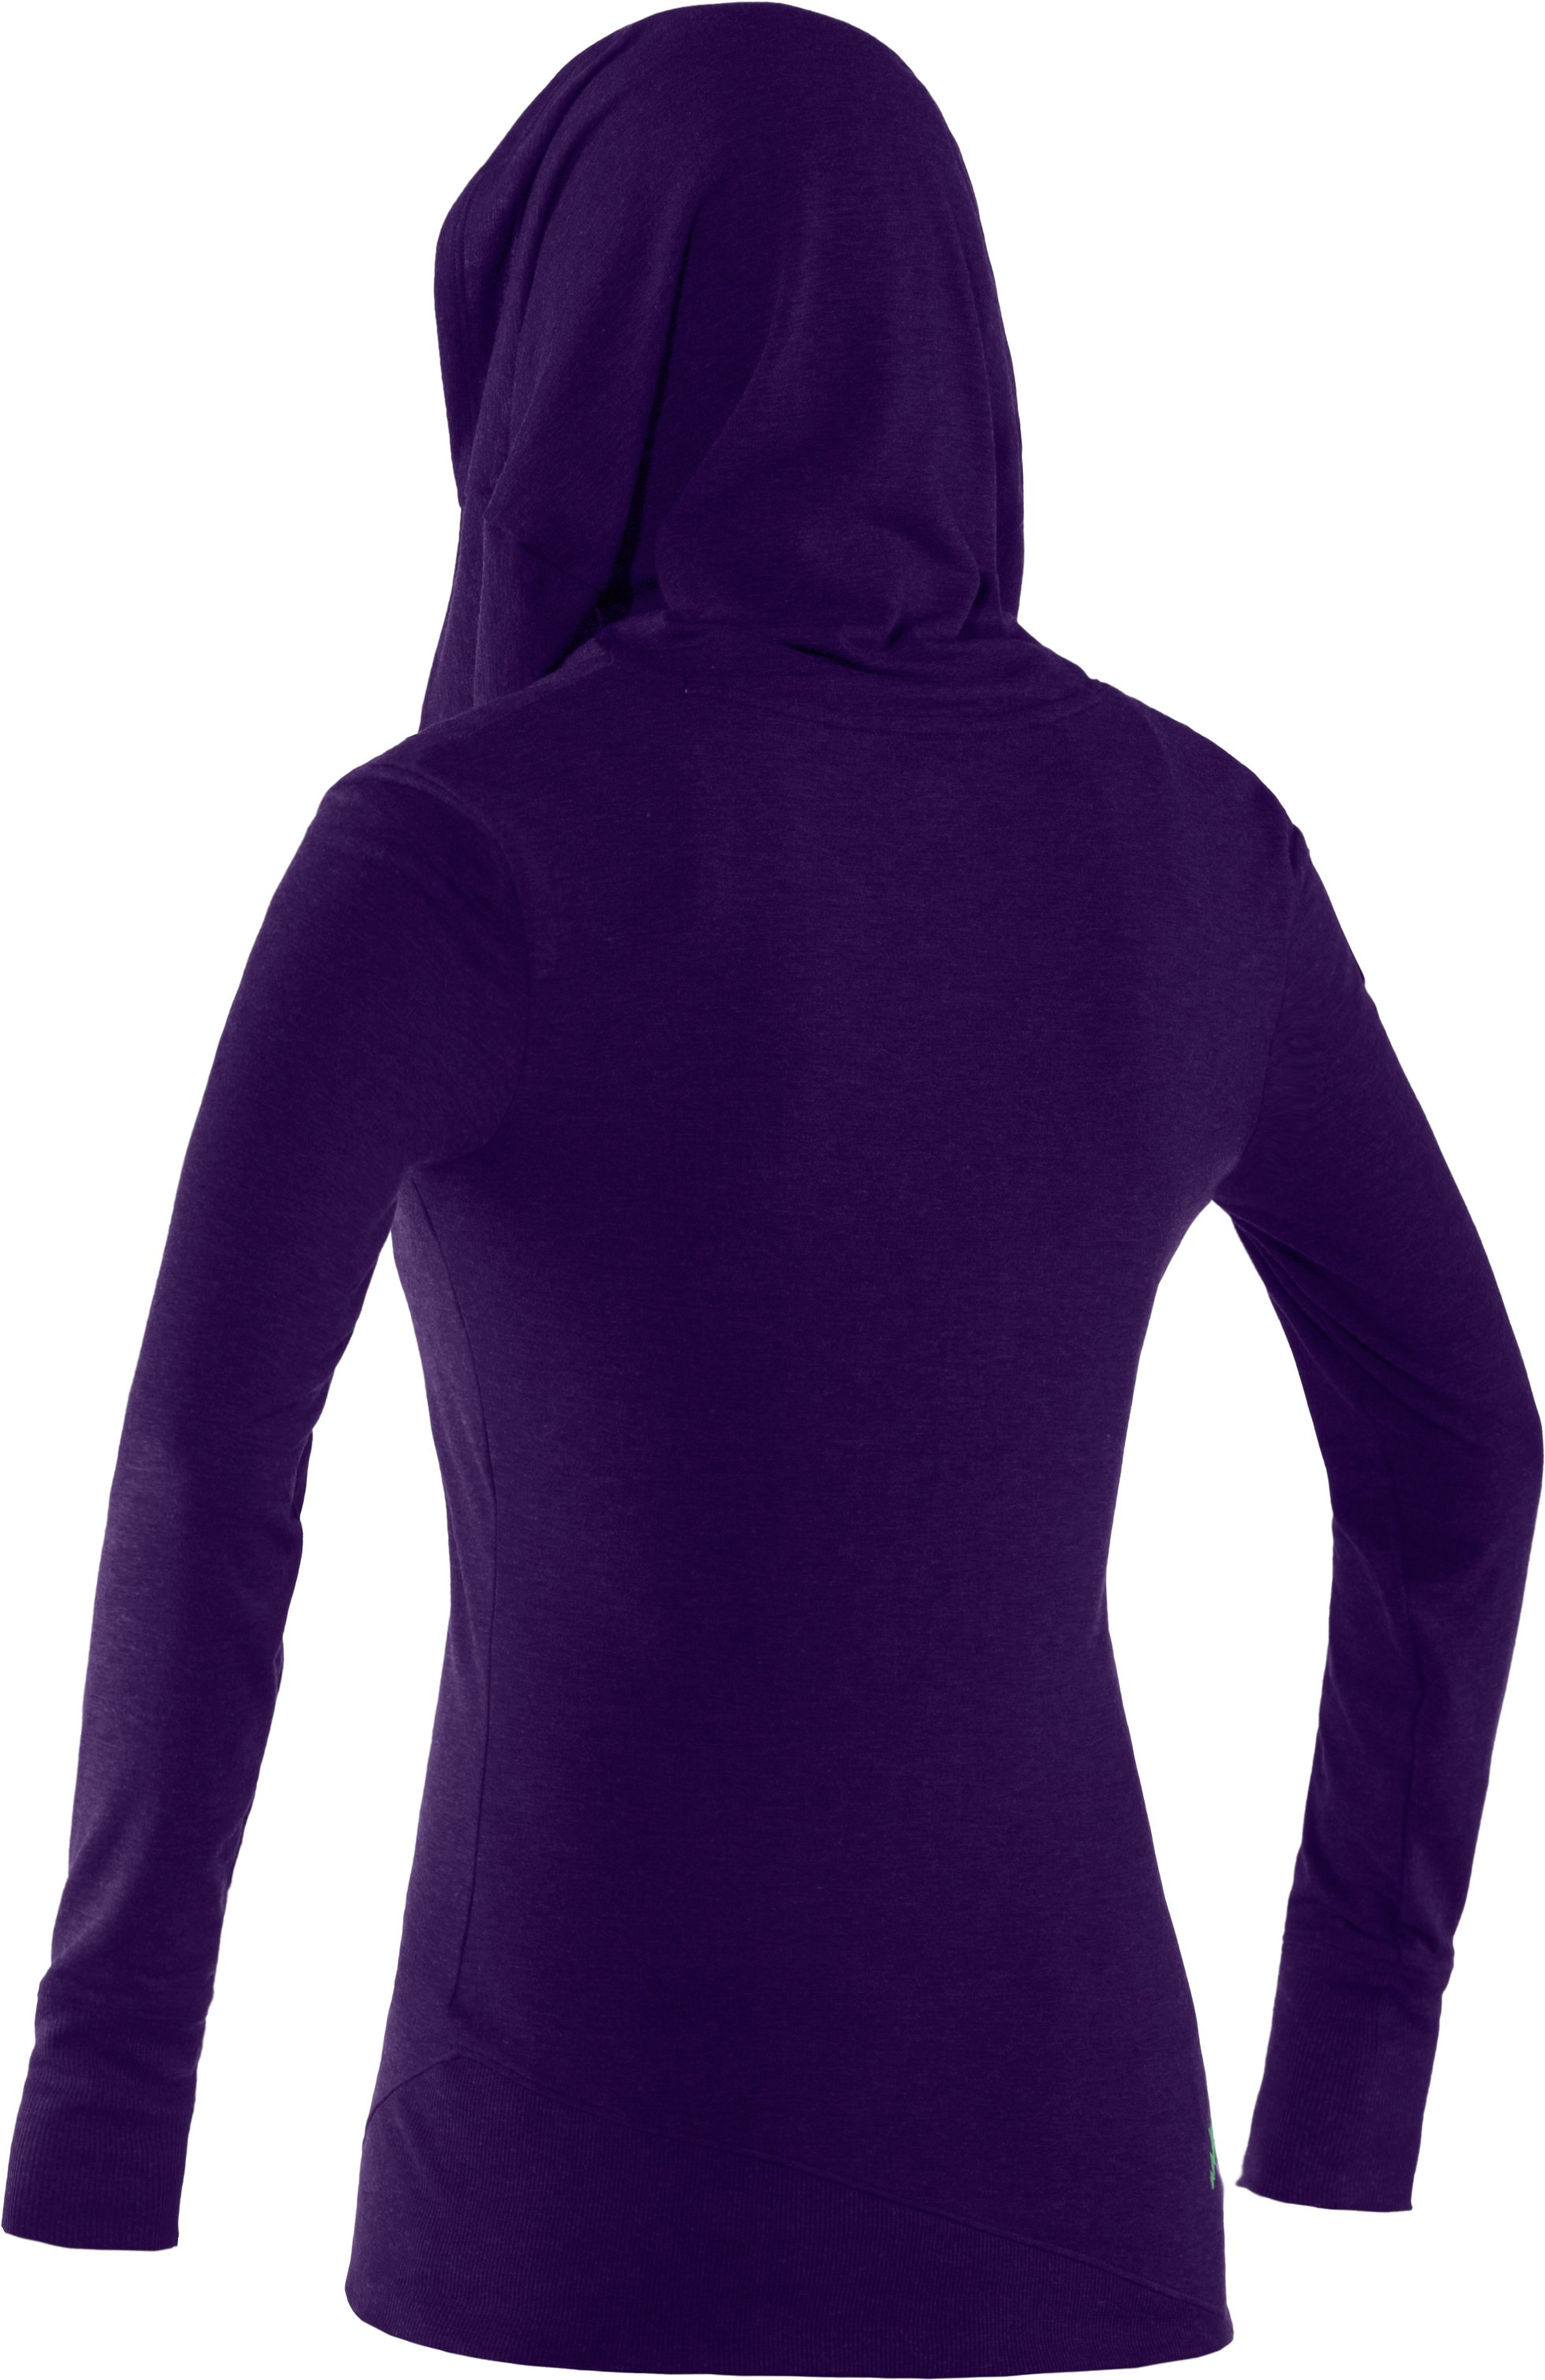 Women's Sheep's Clothing Hoodie, Purple Rain, undefined